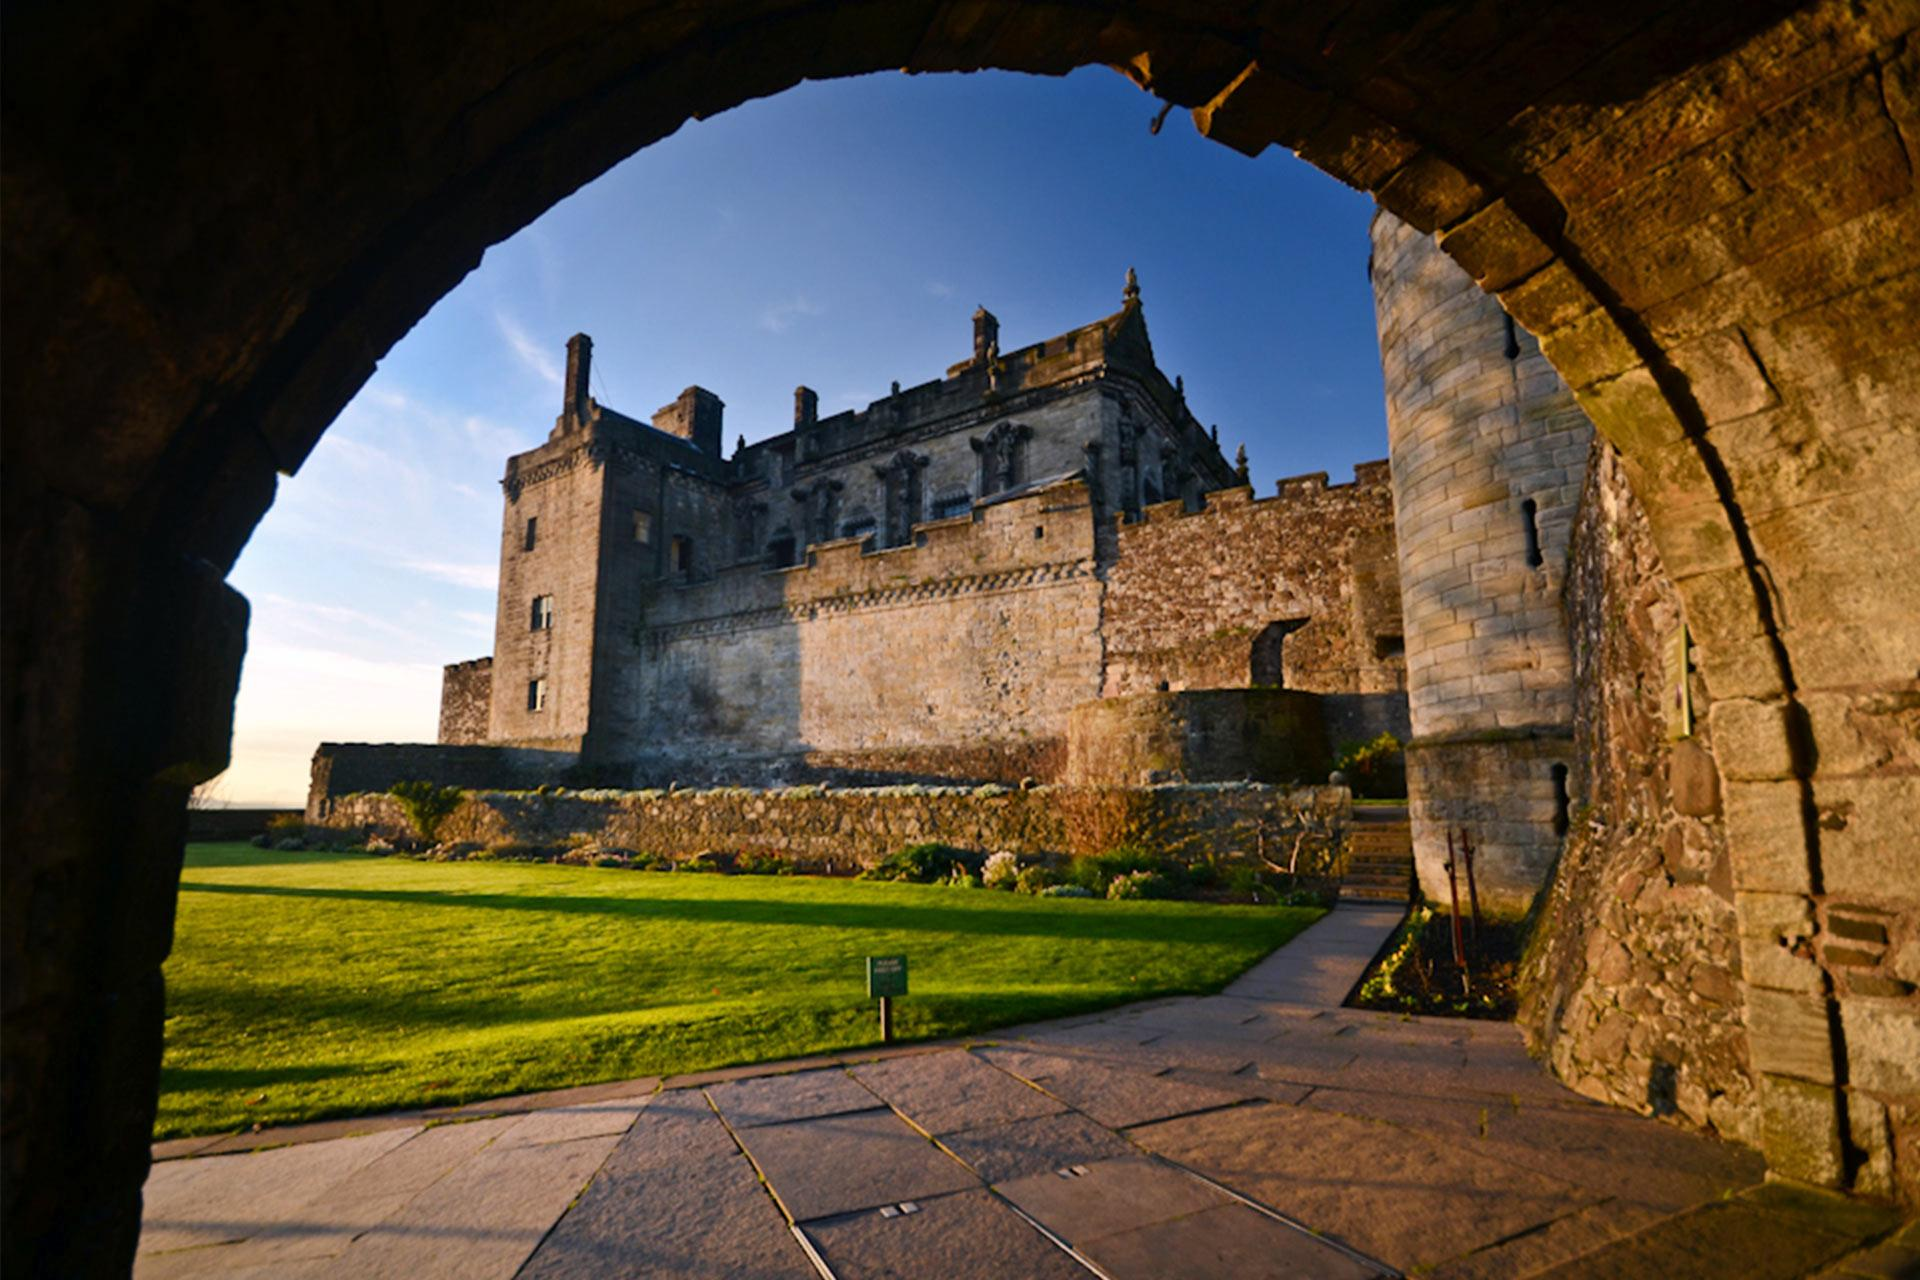 Stirling Castle Stirling, Things To See & Do & Attractions in Stirling | VisitScotland